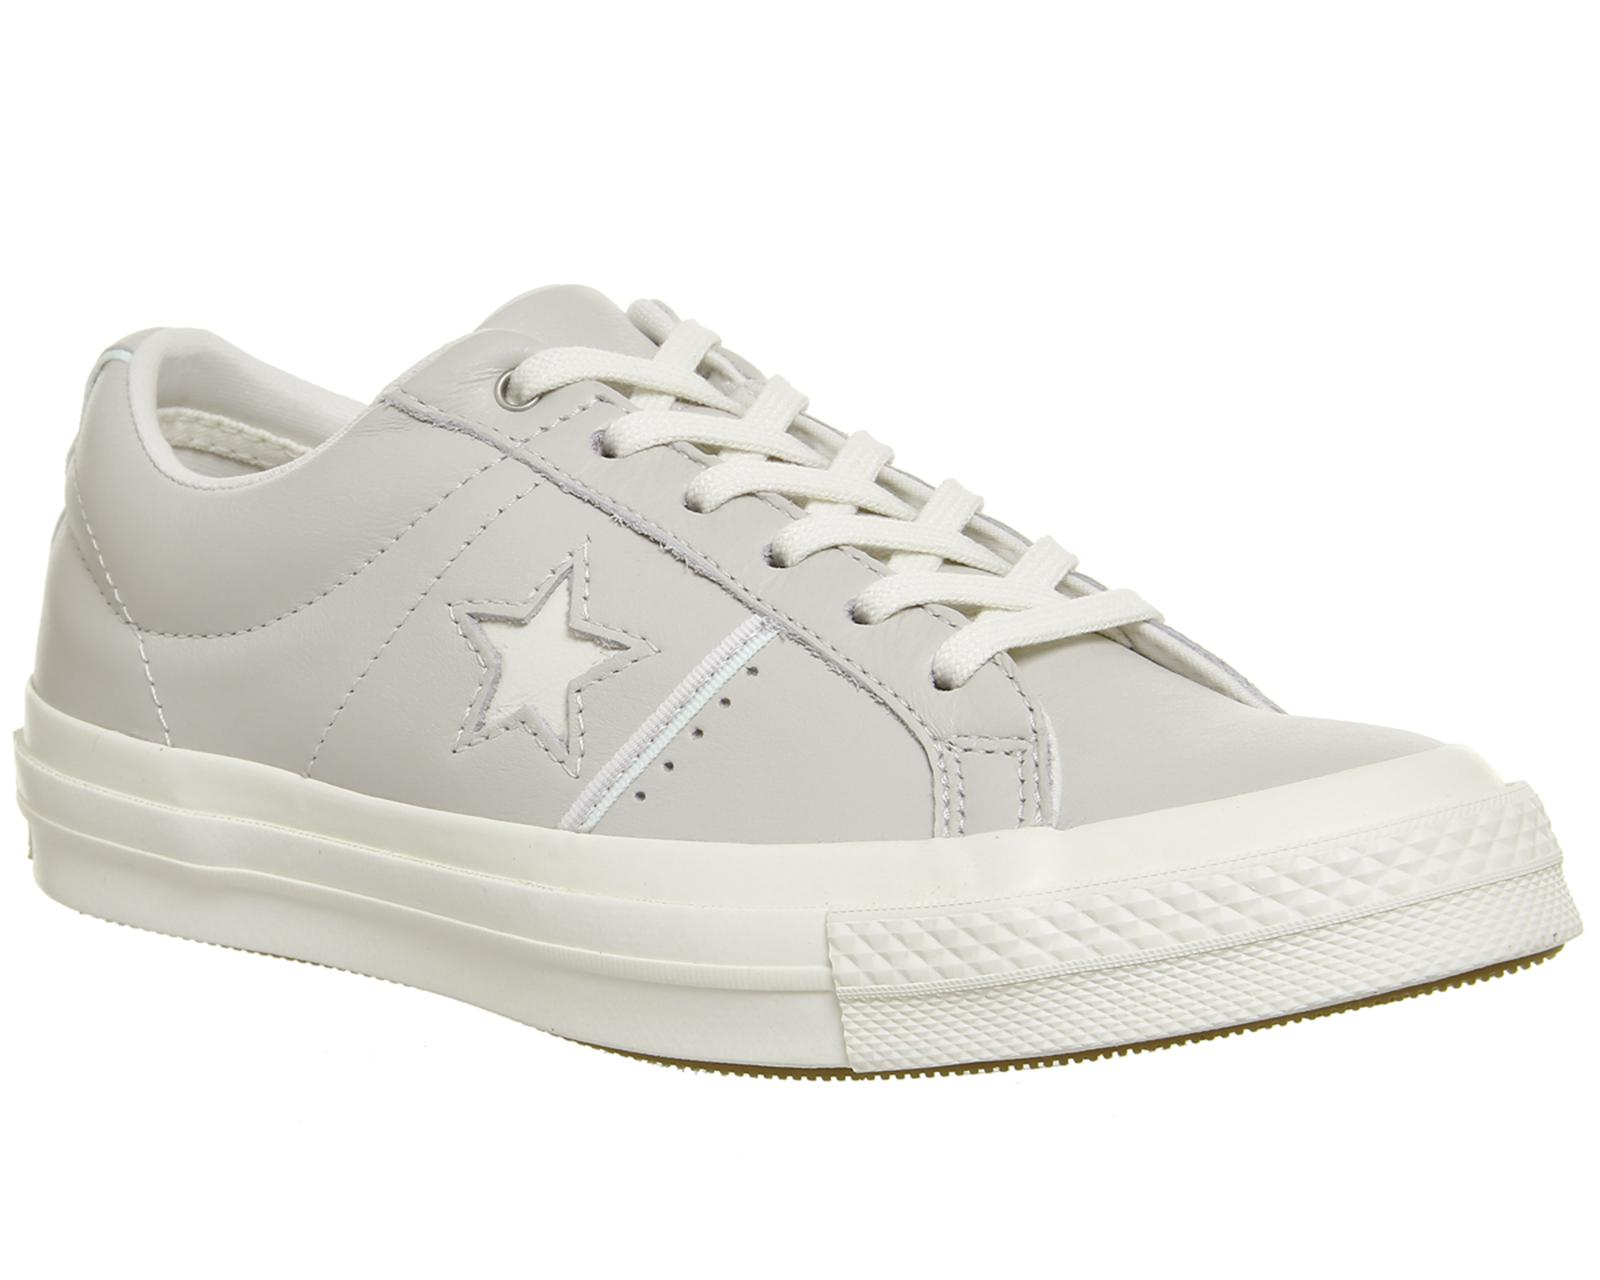 fe3d91addeb2 Lyst - Converse One Star Trainers